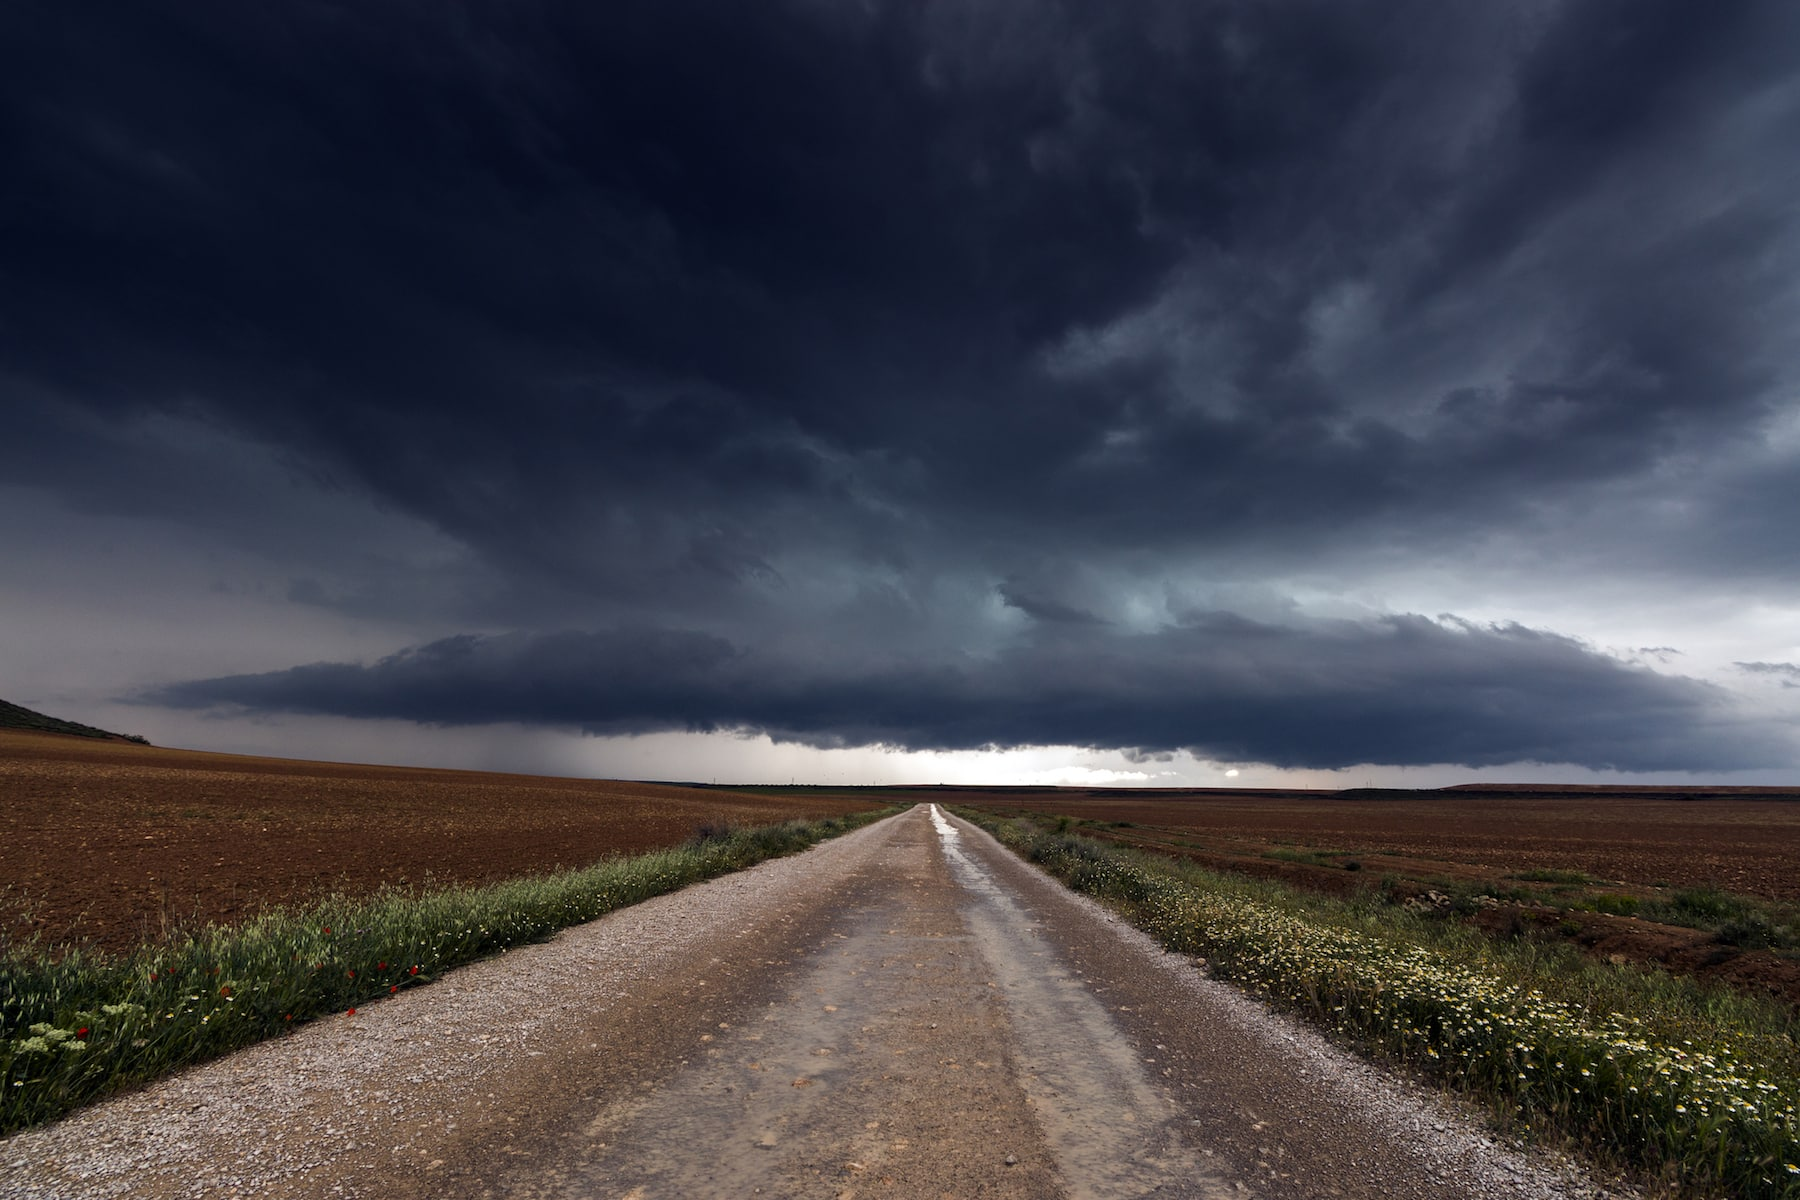 Landscape With Road and Storm on the Horizon